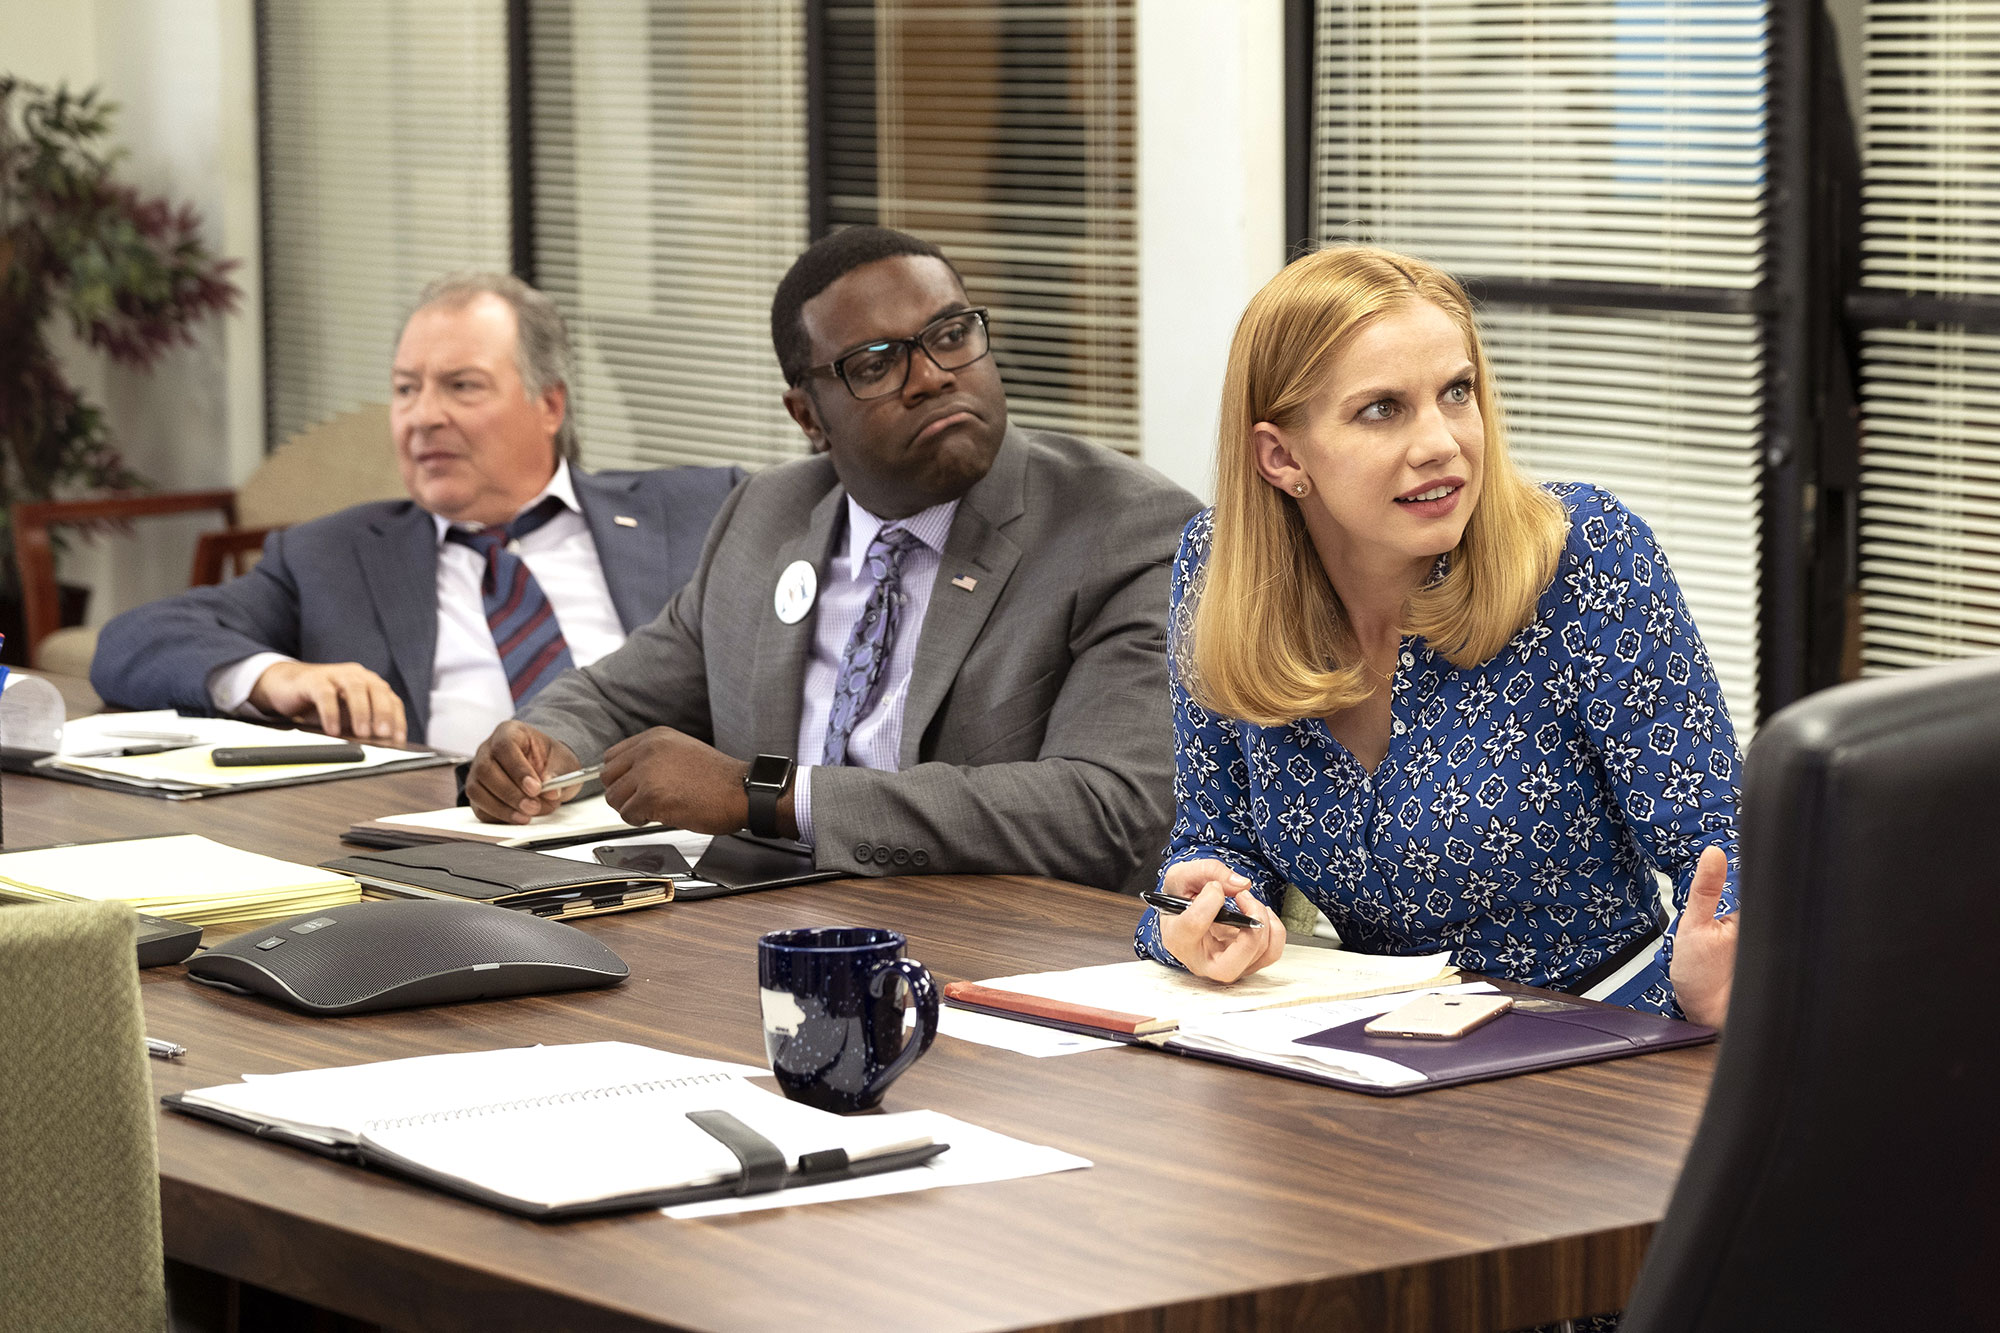 Kevin Dunn, Sam Richardson, and Anna Chlumsky 25 Things You DOn't Know About Me - Kevin Dunn, Sam Richardson, and Anna Chlumsky on Veep